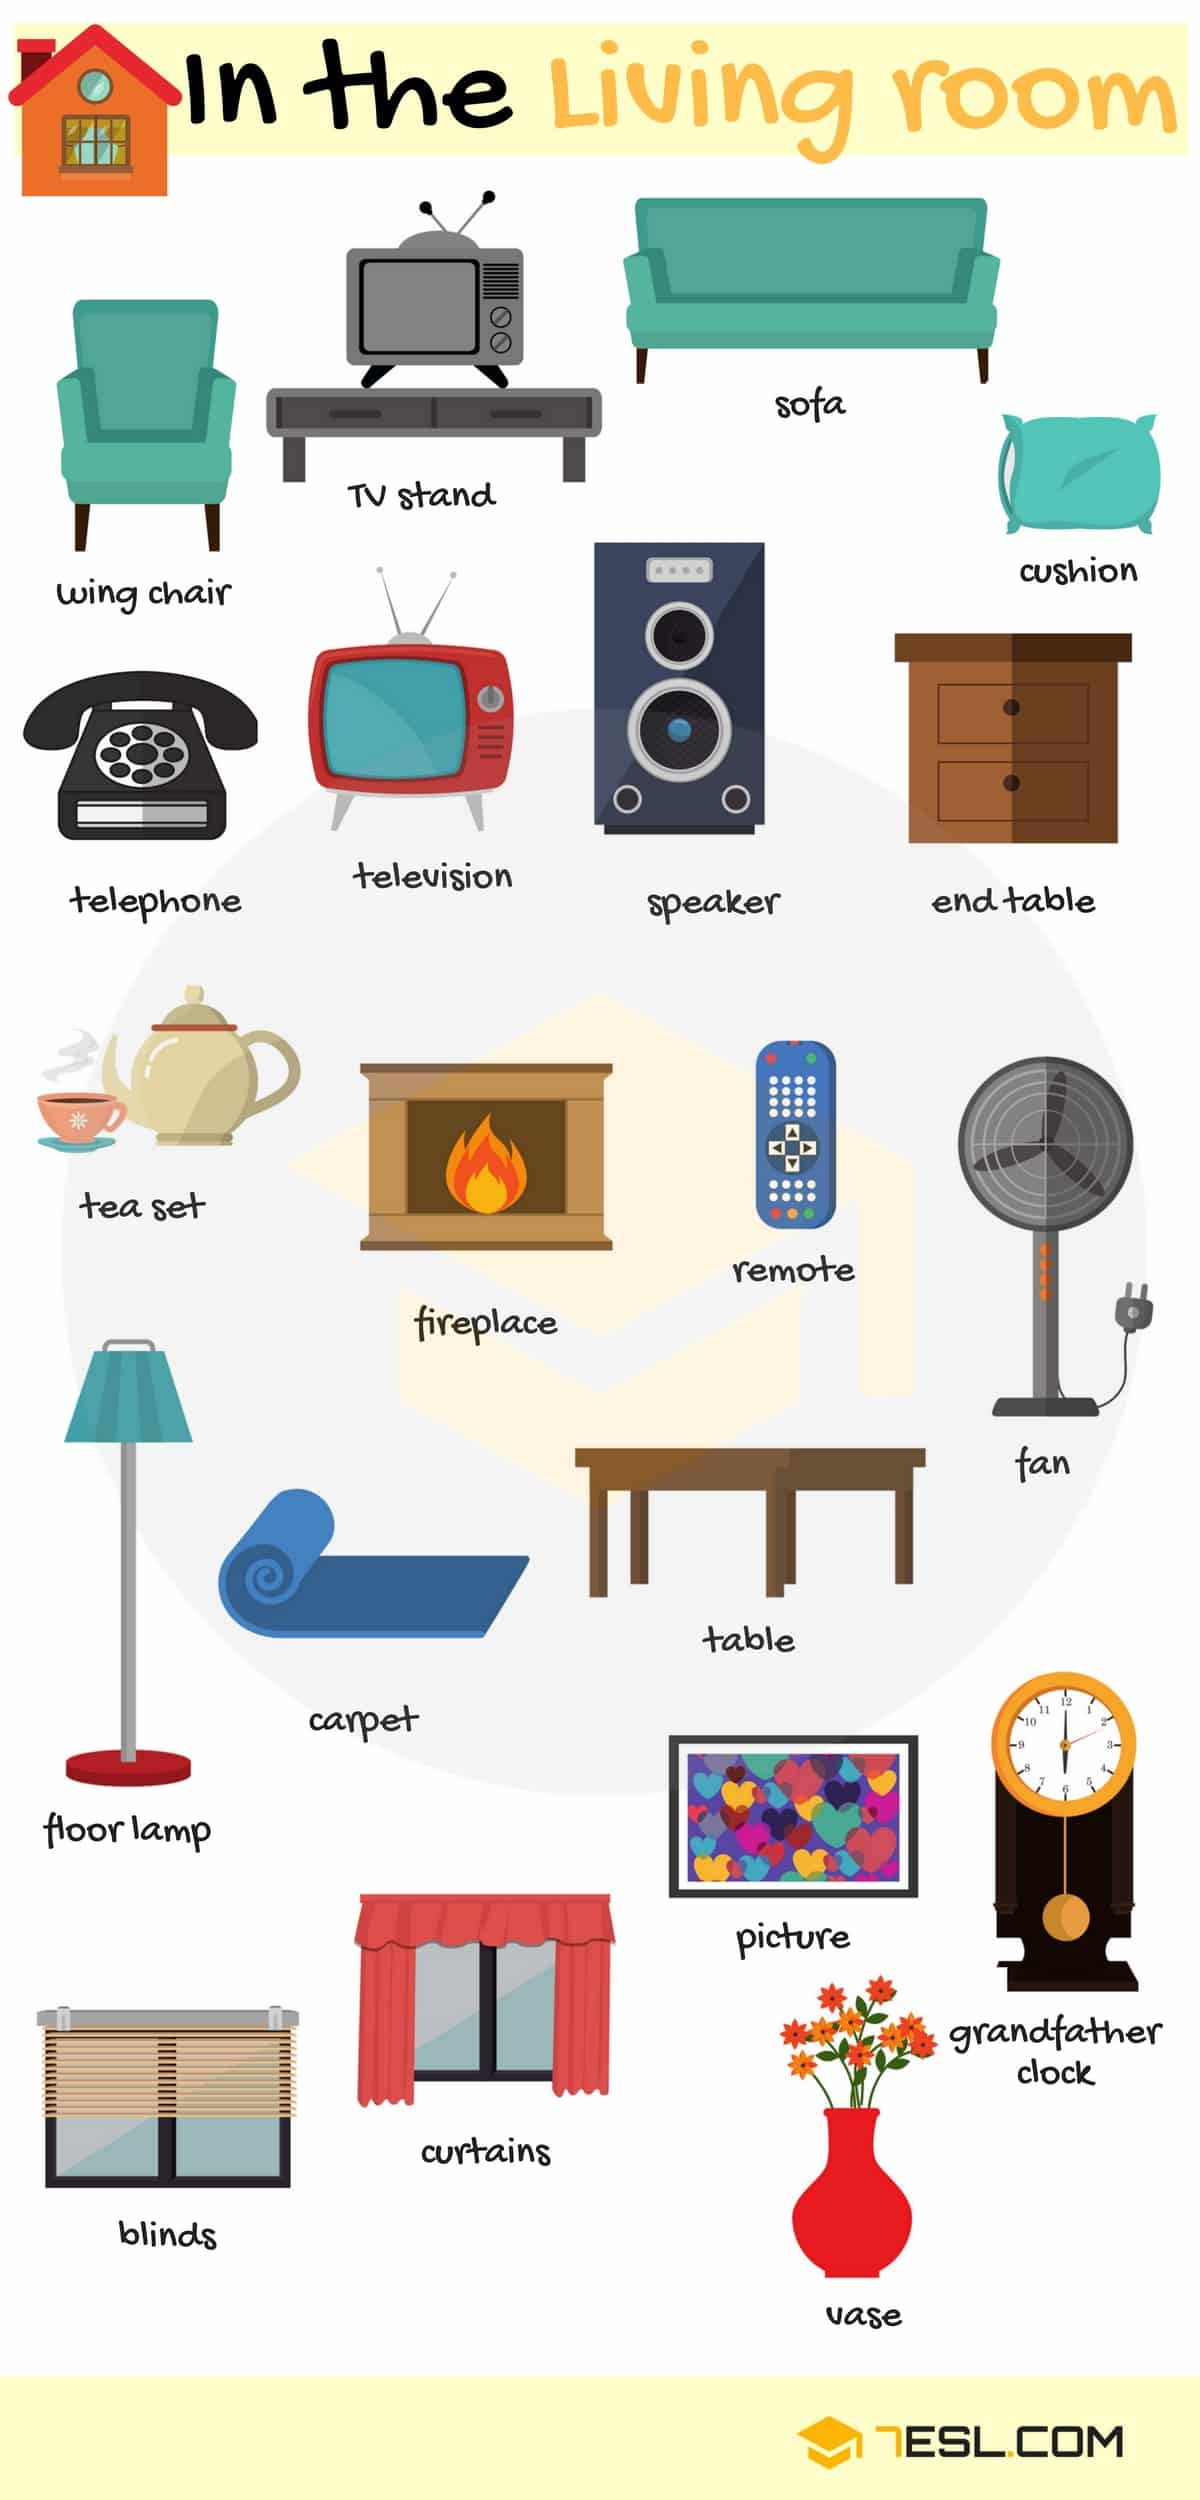 In the Living Room Vocabulary | Image